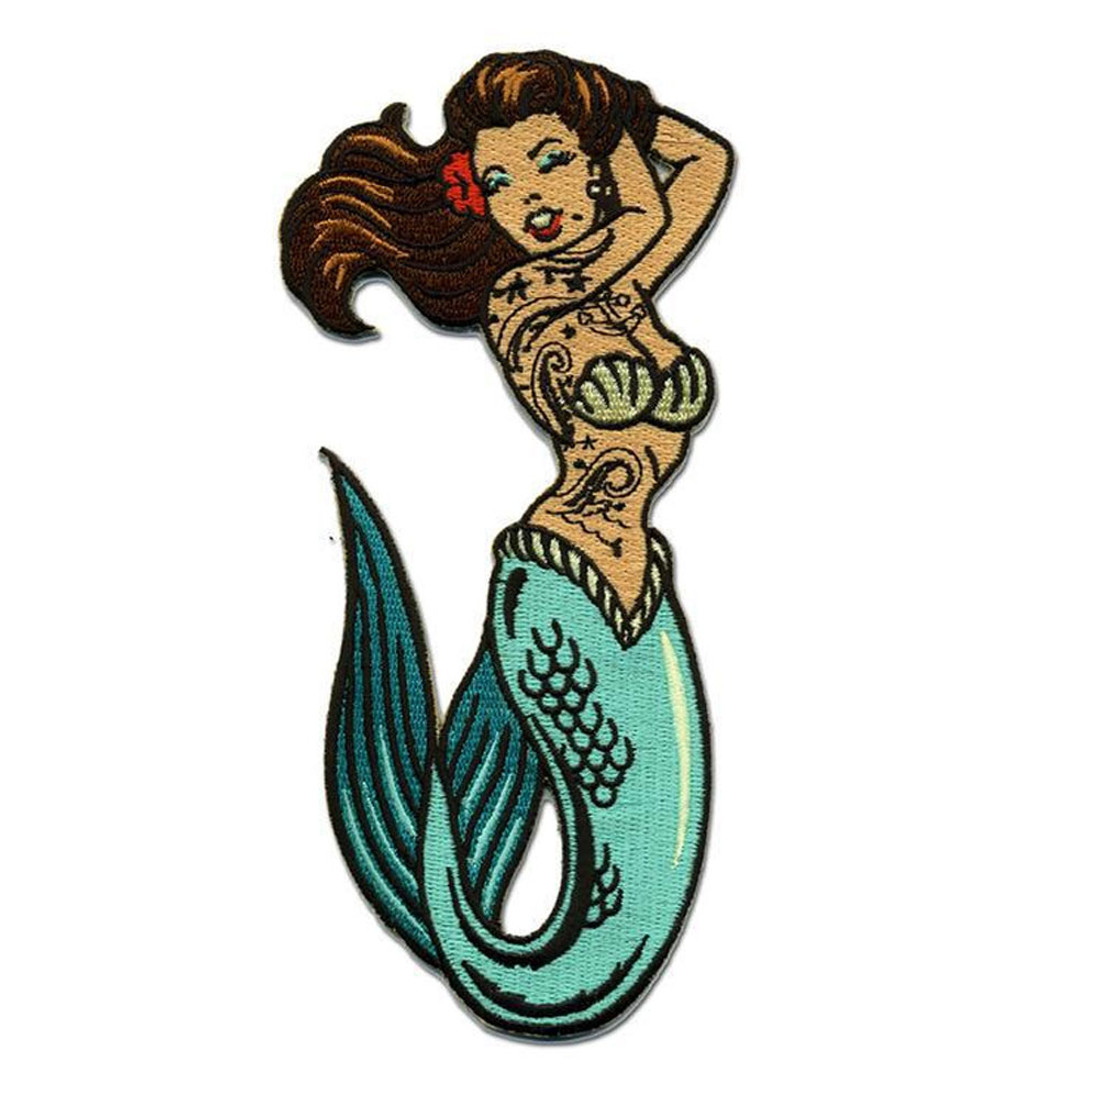 Pin Up Girl Tattoo Mermaid Patch Embroidered Iron On Applique